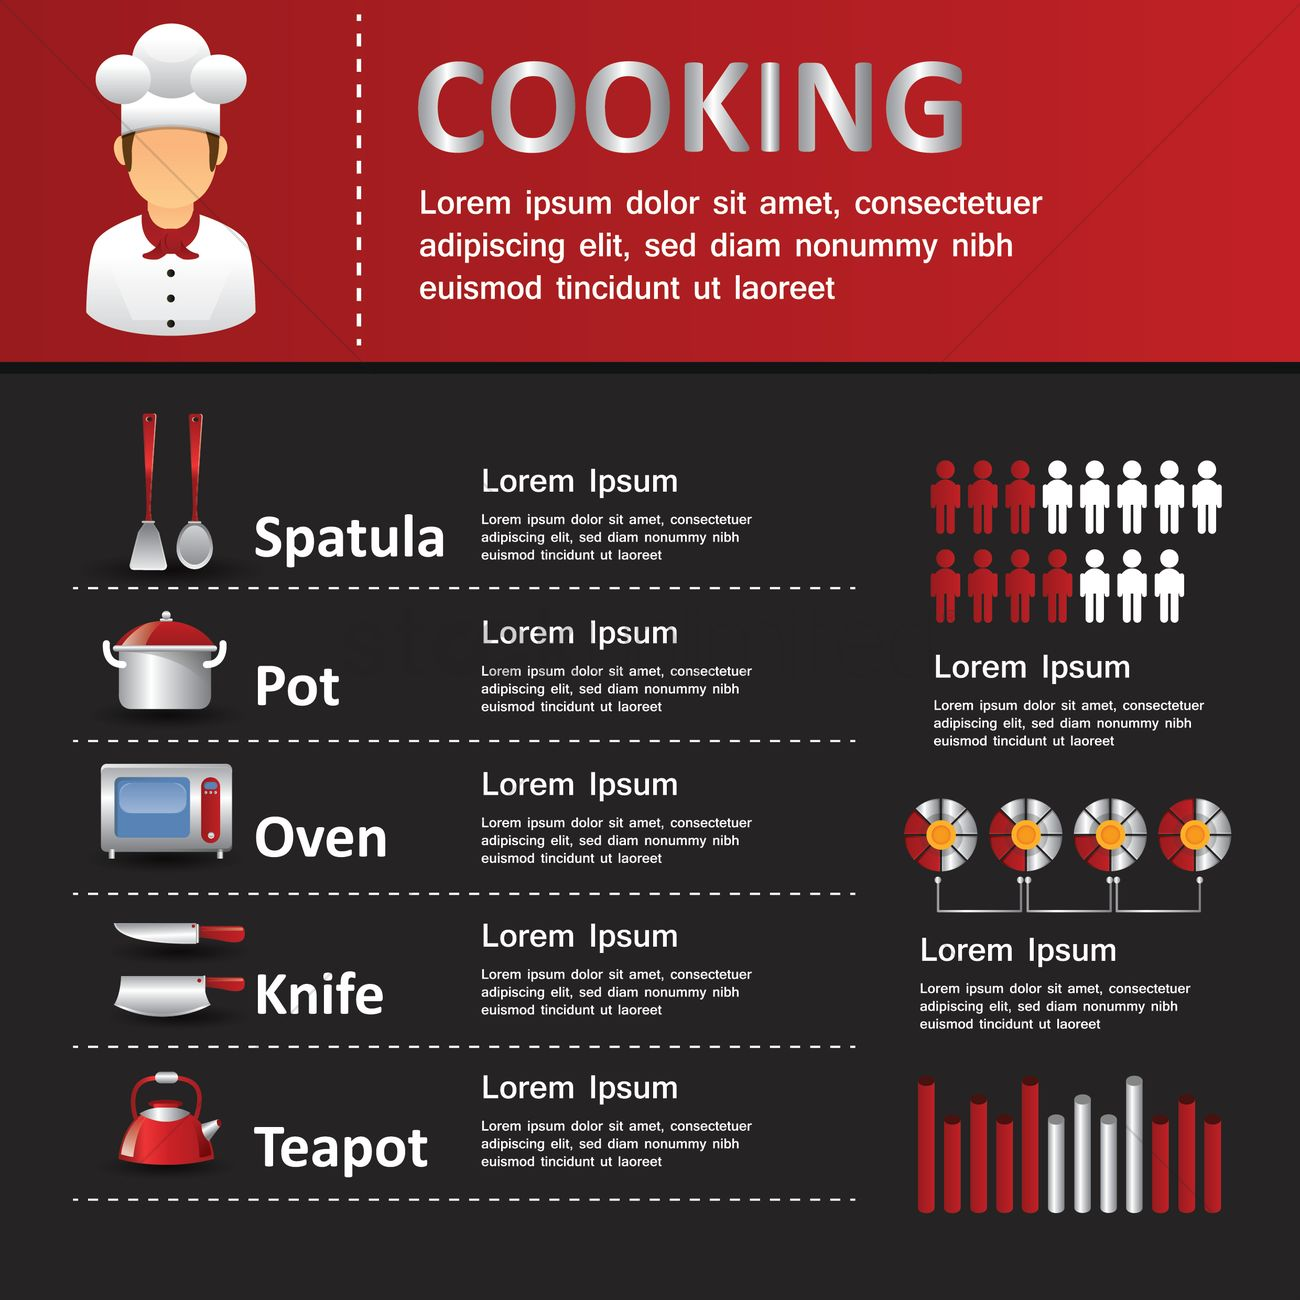 cooking-infographic_1517325.jpg